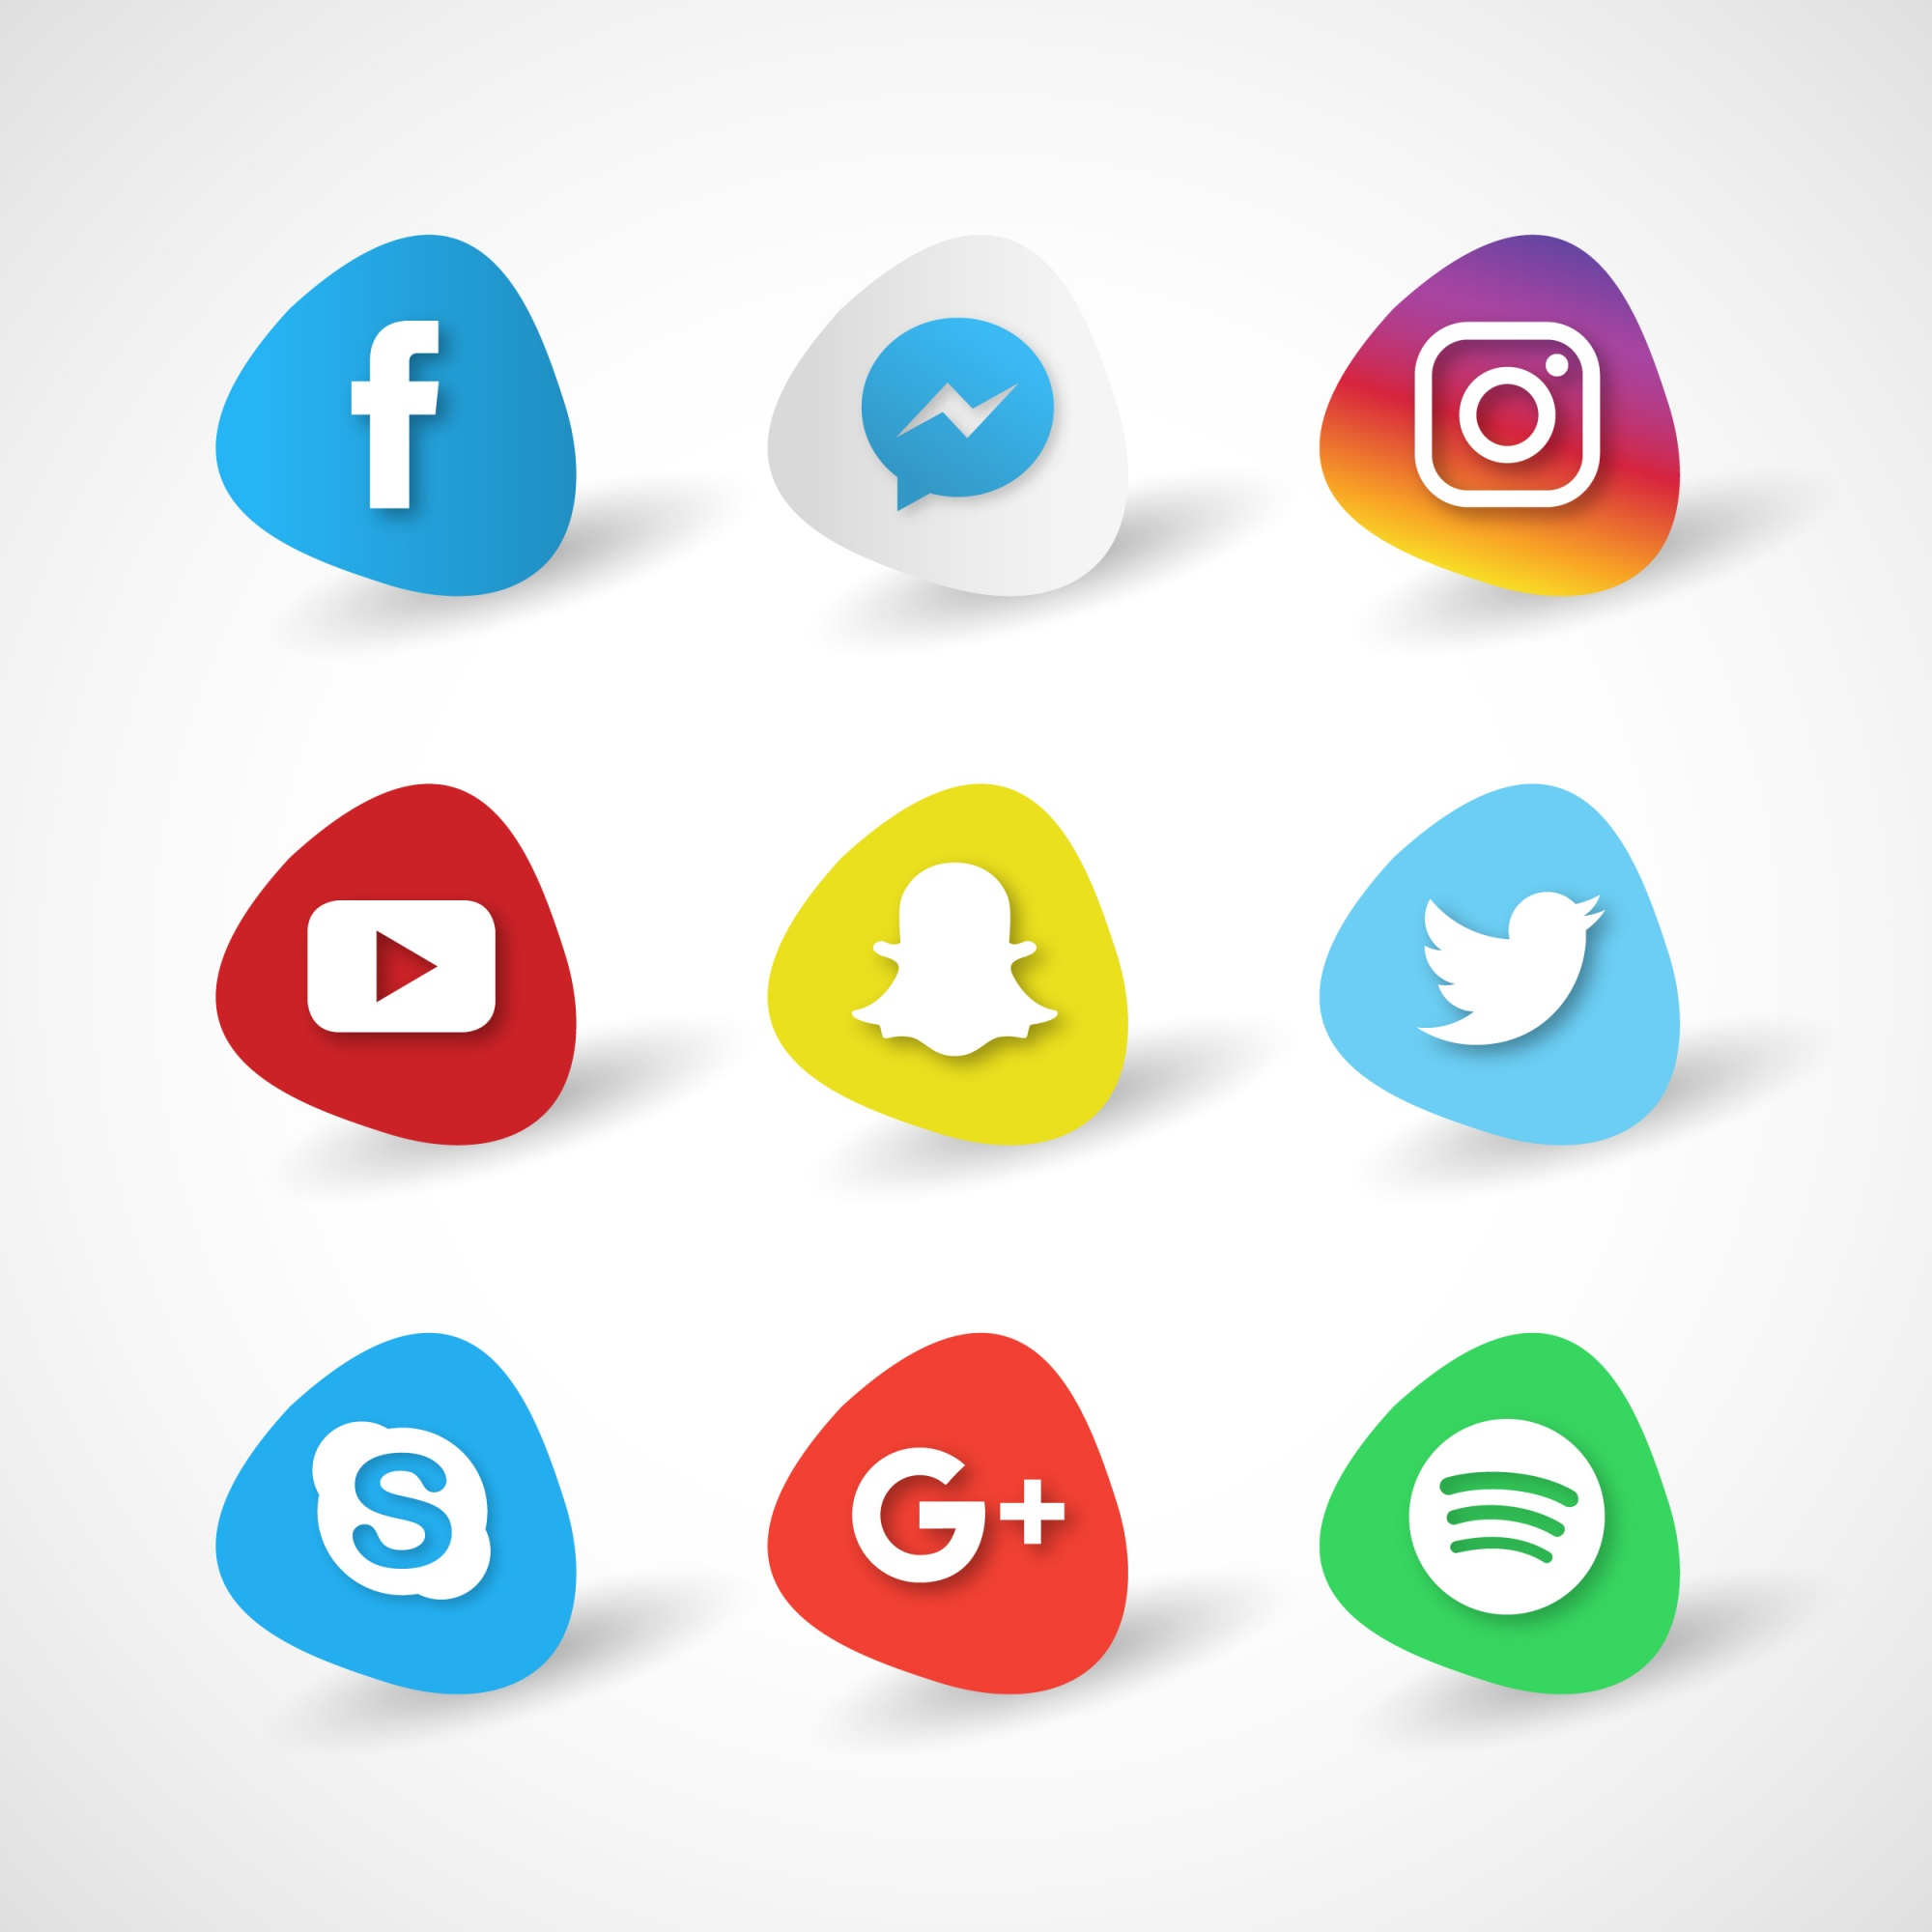 Icons for social networks on a white background